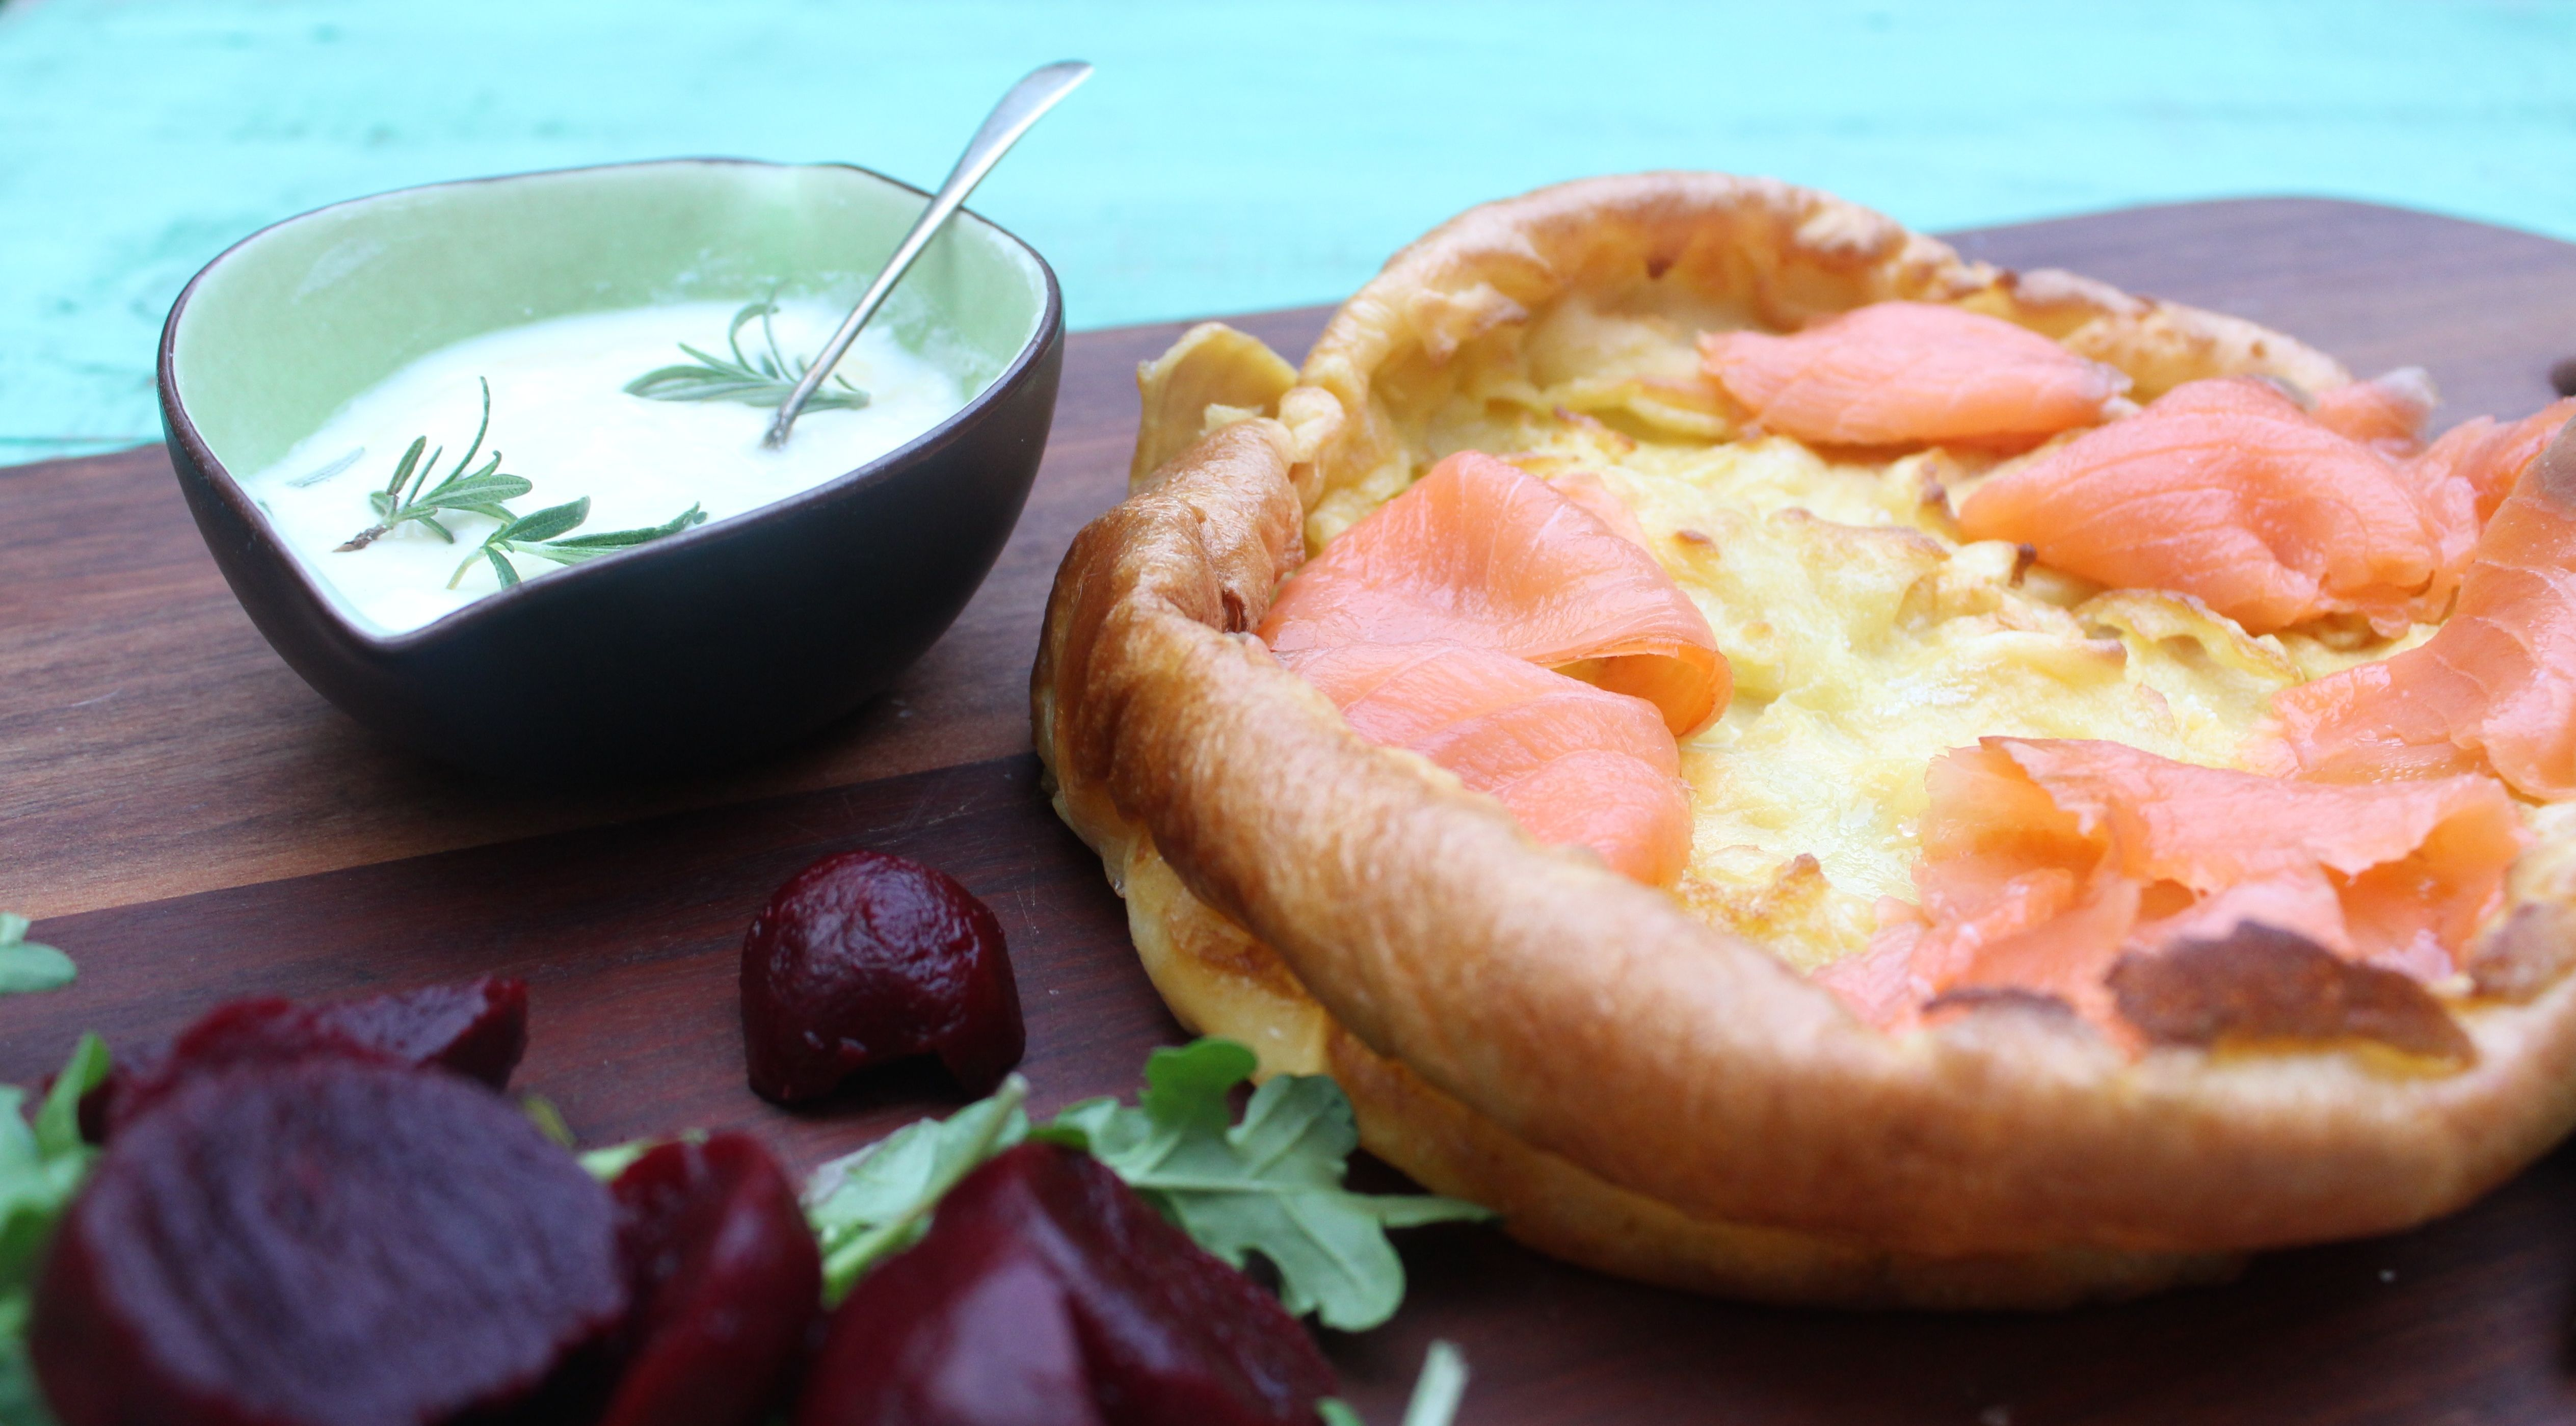 jamie oliver s smoked salmon and yorkshire pudding pinterest pudding lachs und fleisch. Black Bedroom Furniture Sets. Home Design Ideas